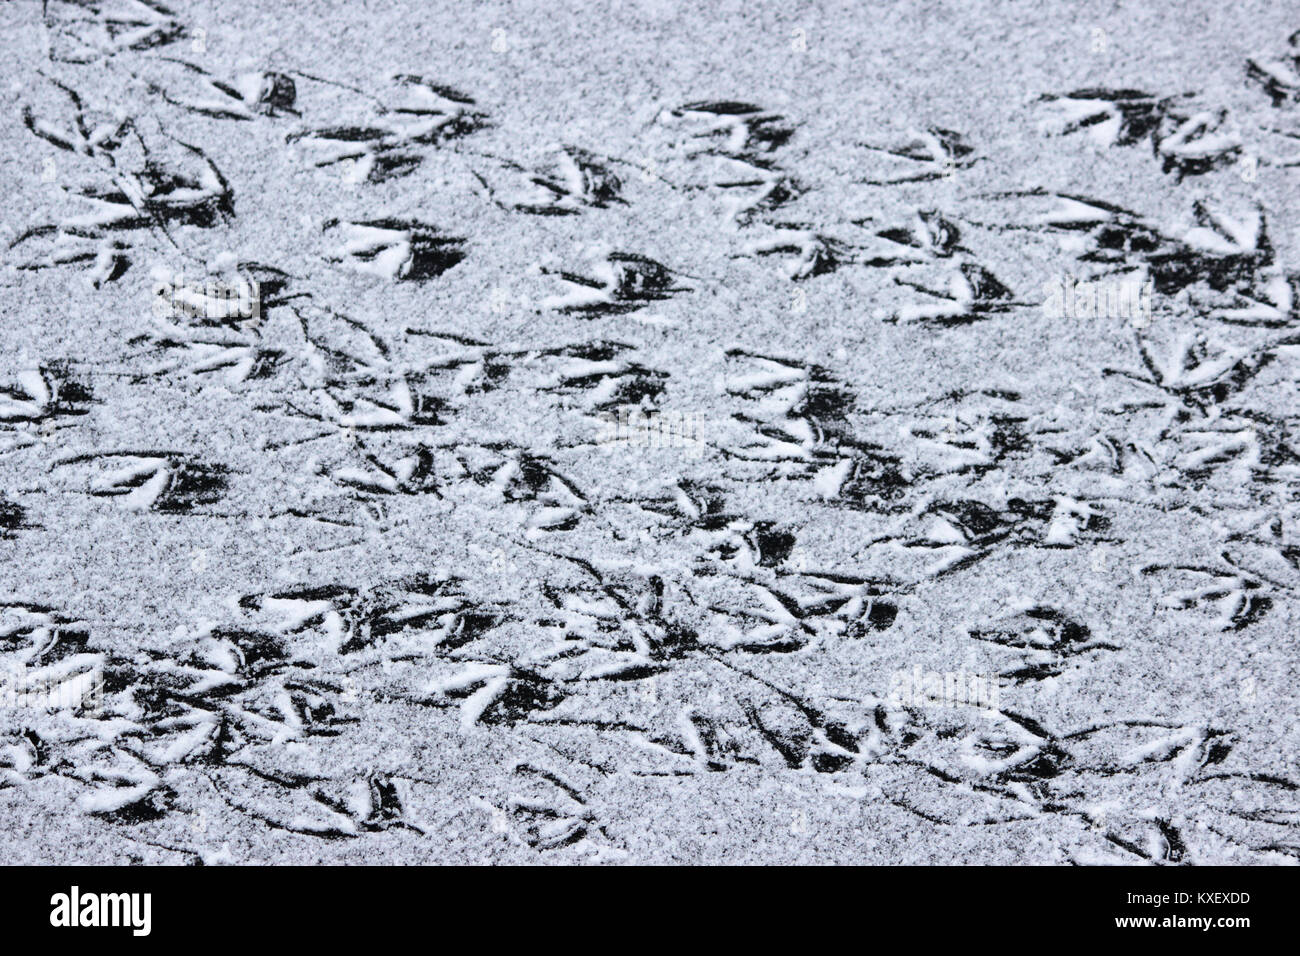 Footprints of ducks on the surface of the lake, covered with a thin layer of ice and snow - Stock Image